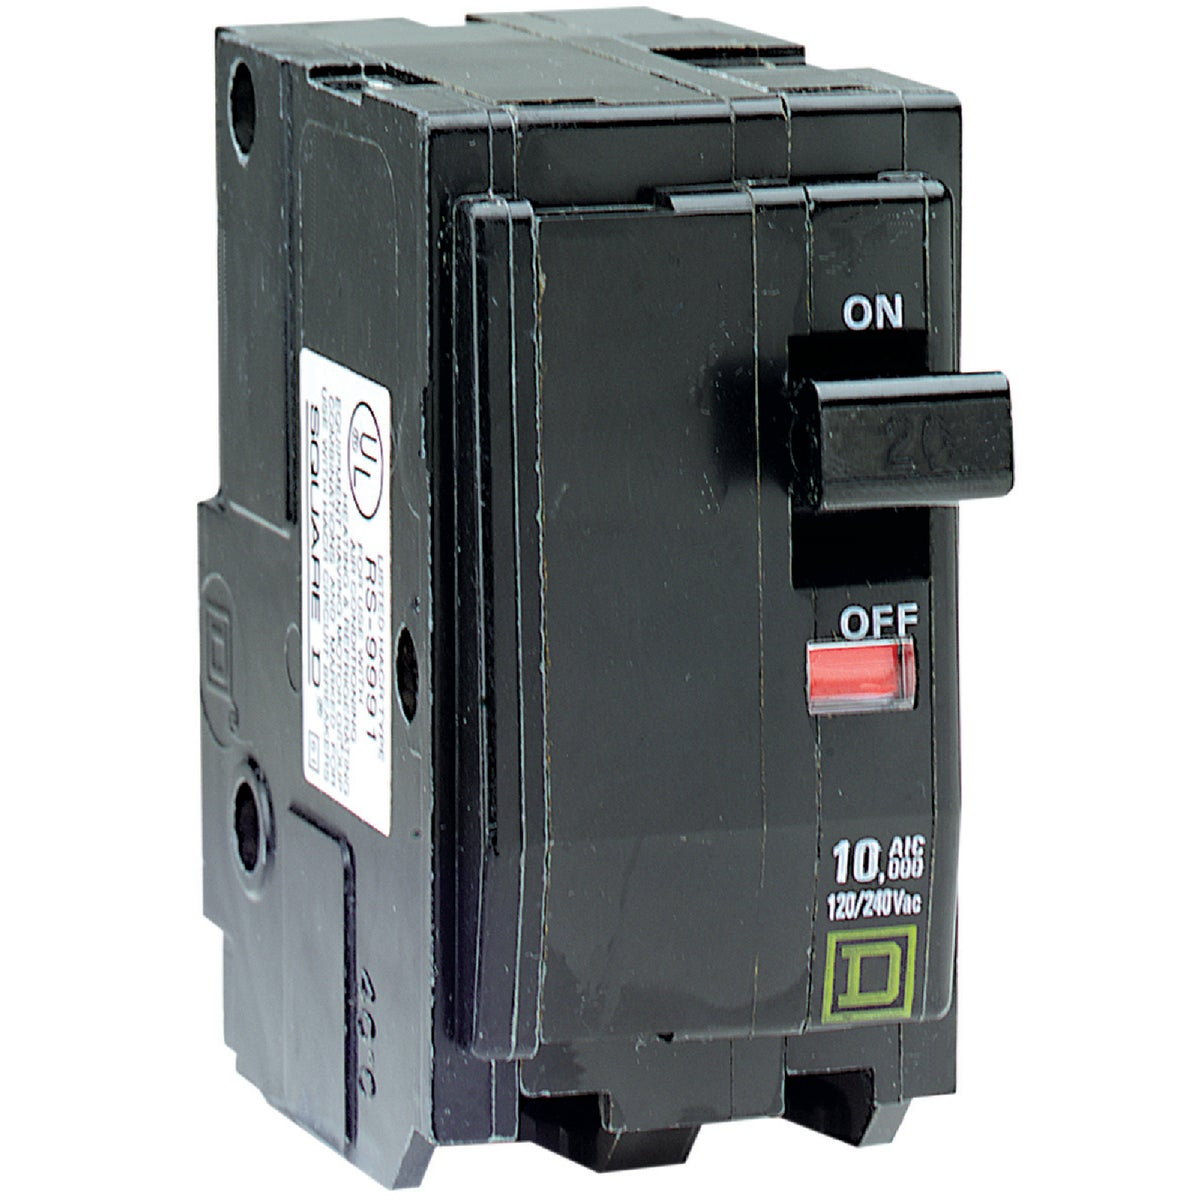 60A 2P CIRCUIT BREAKER - QO260CP by Square D Co